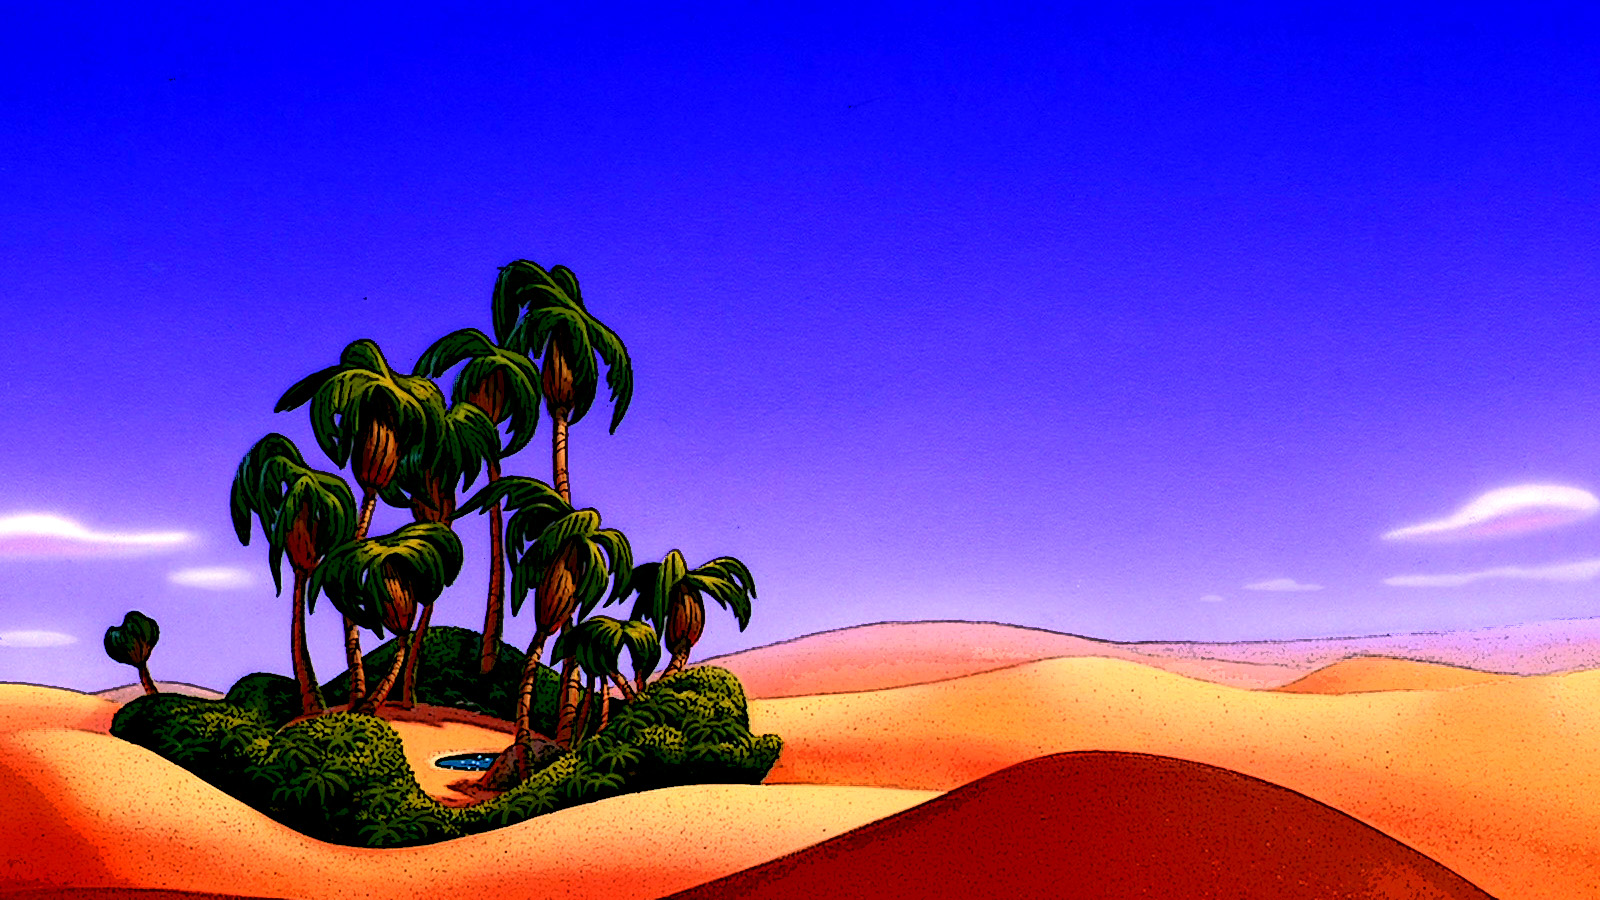 Desert wallpaper